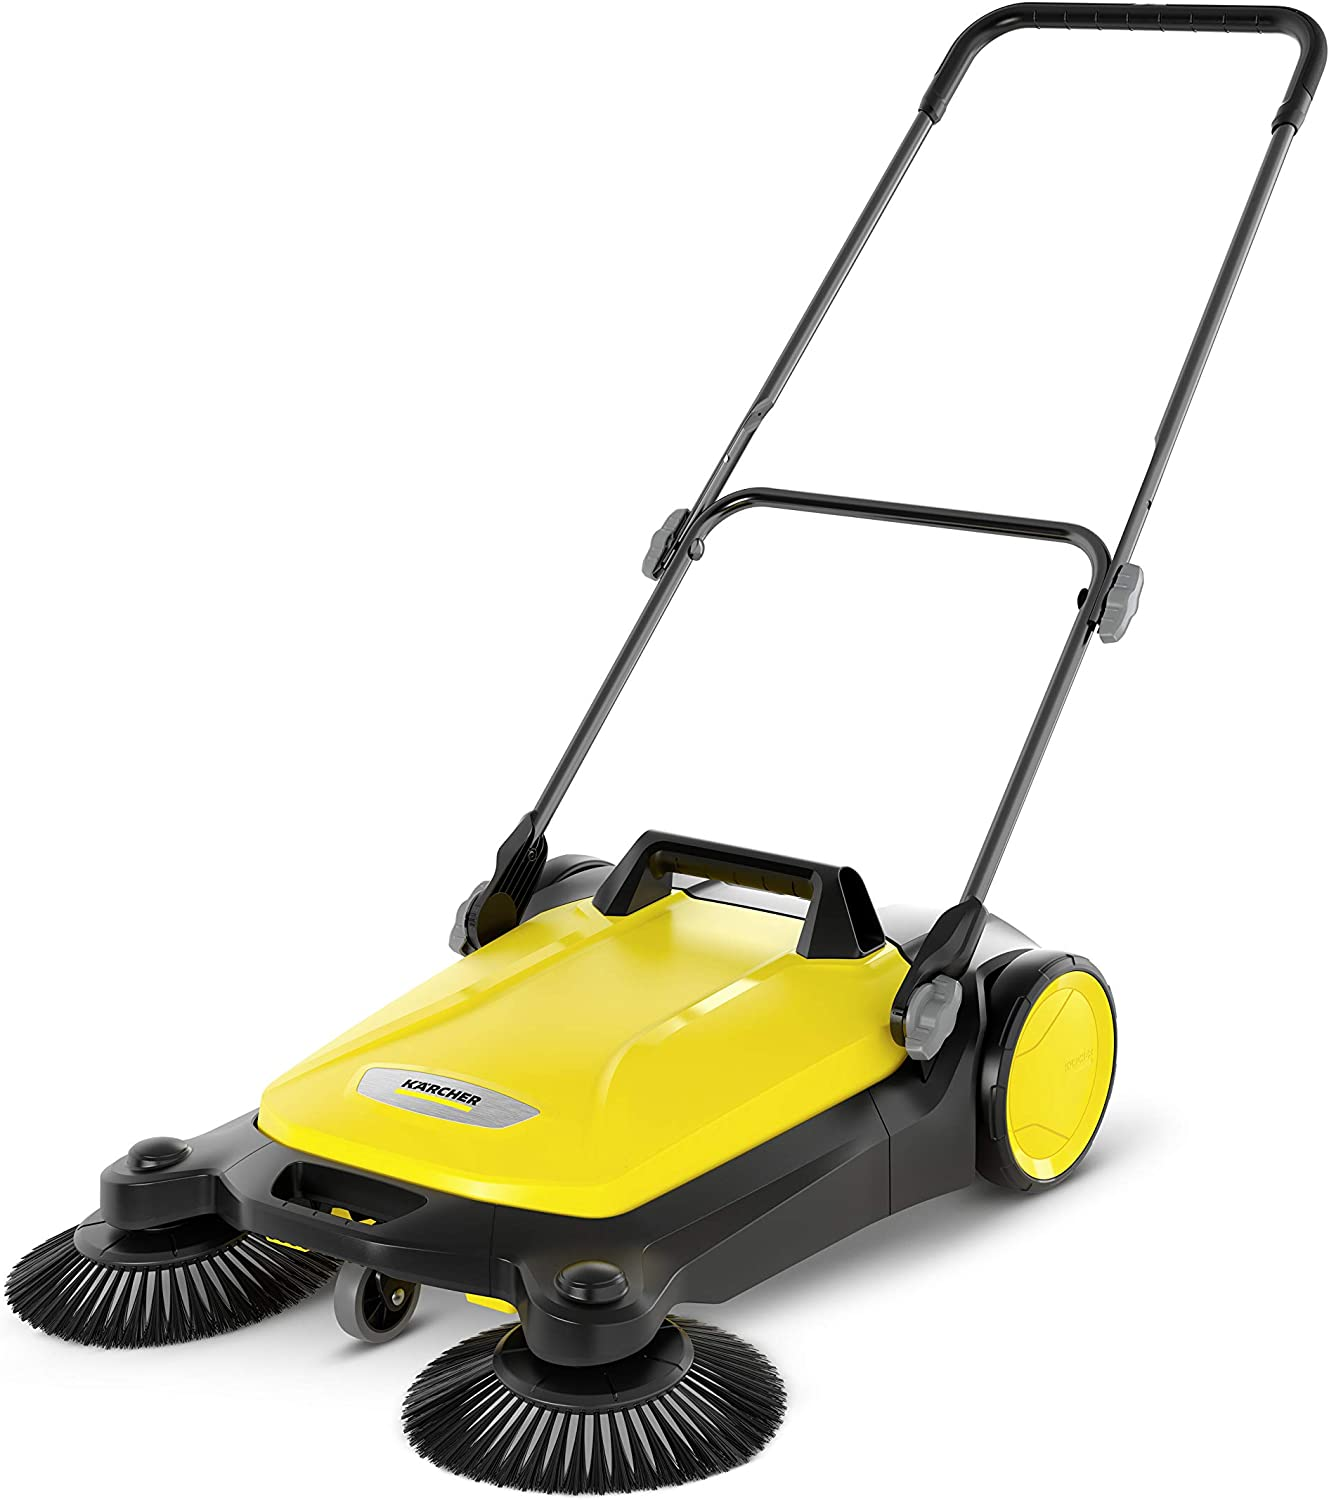 Karcher 17663610 S Year-end gift 4 Twin Mail order cheap Yellow Sweeper Push